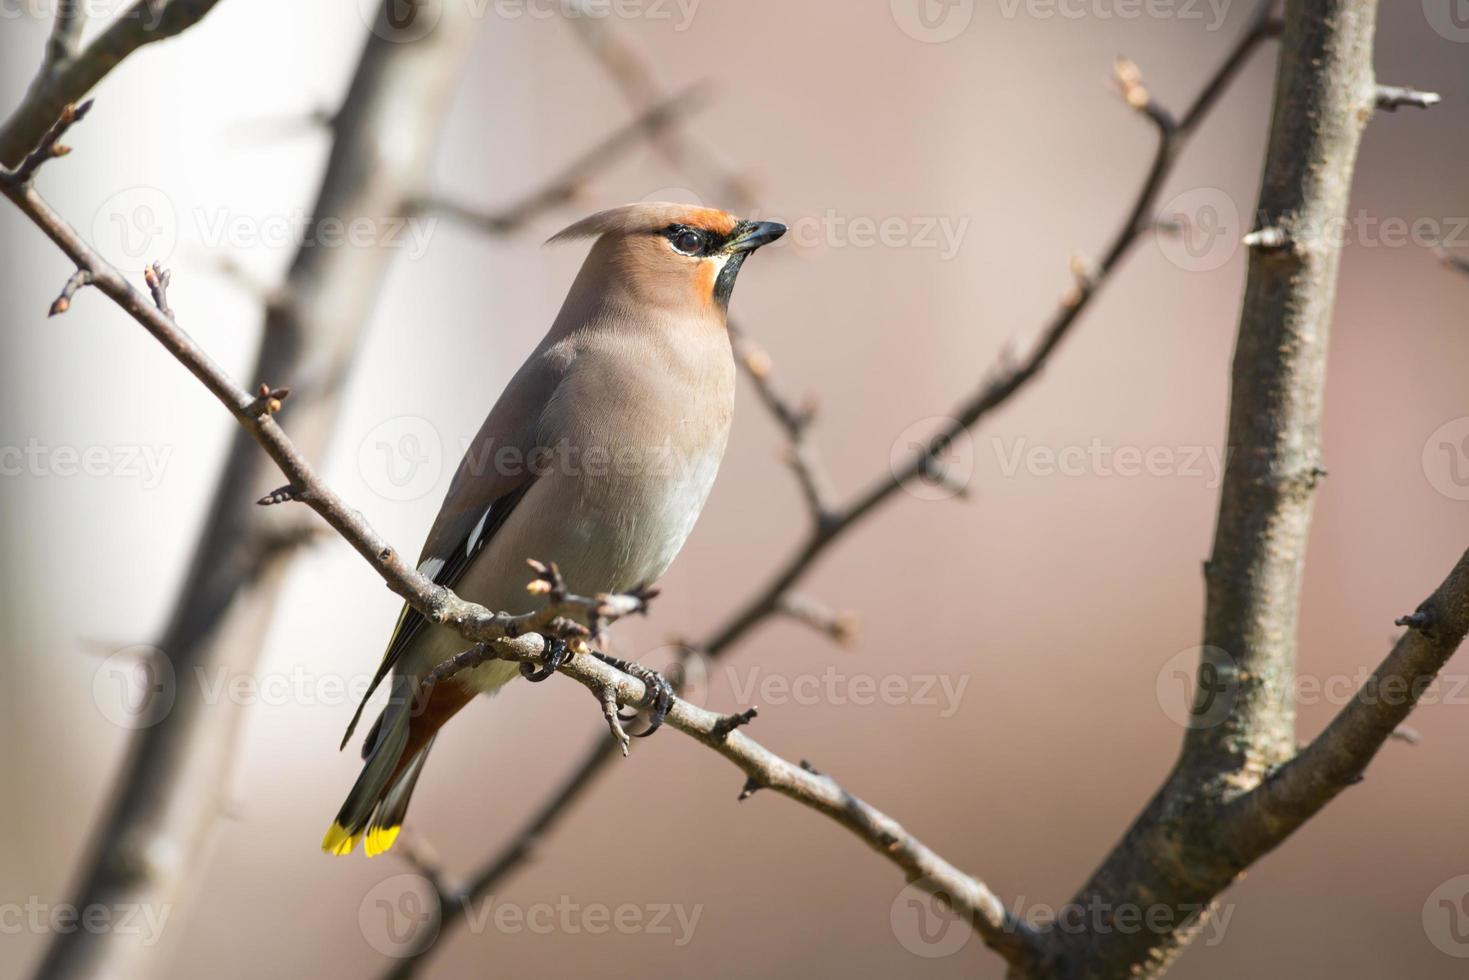 Bohemian Waxwing perched on a branch during spring photo